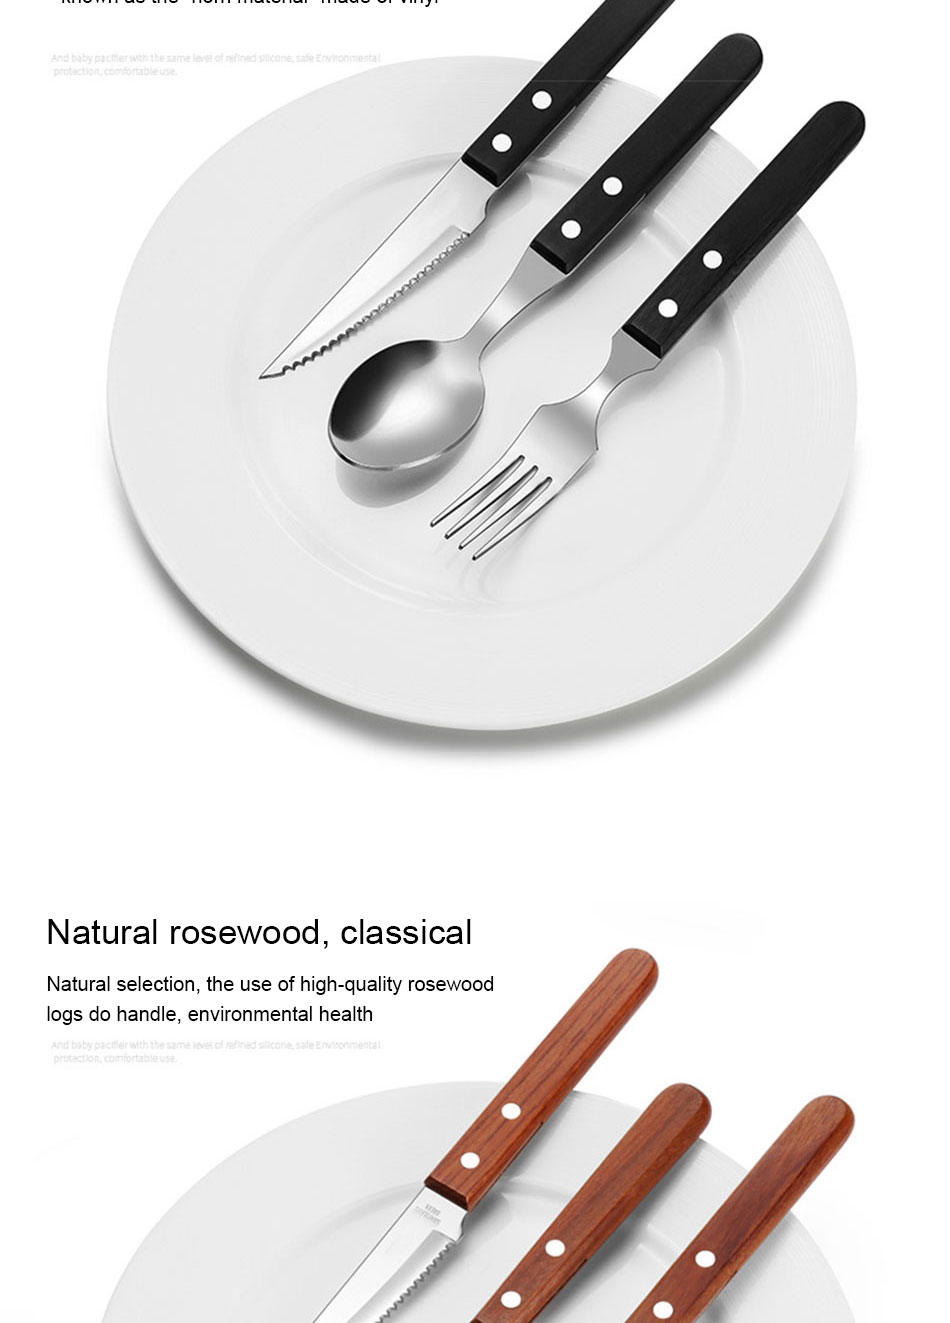 Chic Wooden Handle Dinnerware Set Stainless Steel Black Rosewood Knife Fork Tableware Cutlery European Western Food Set 3pcs (5)